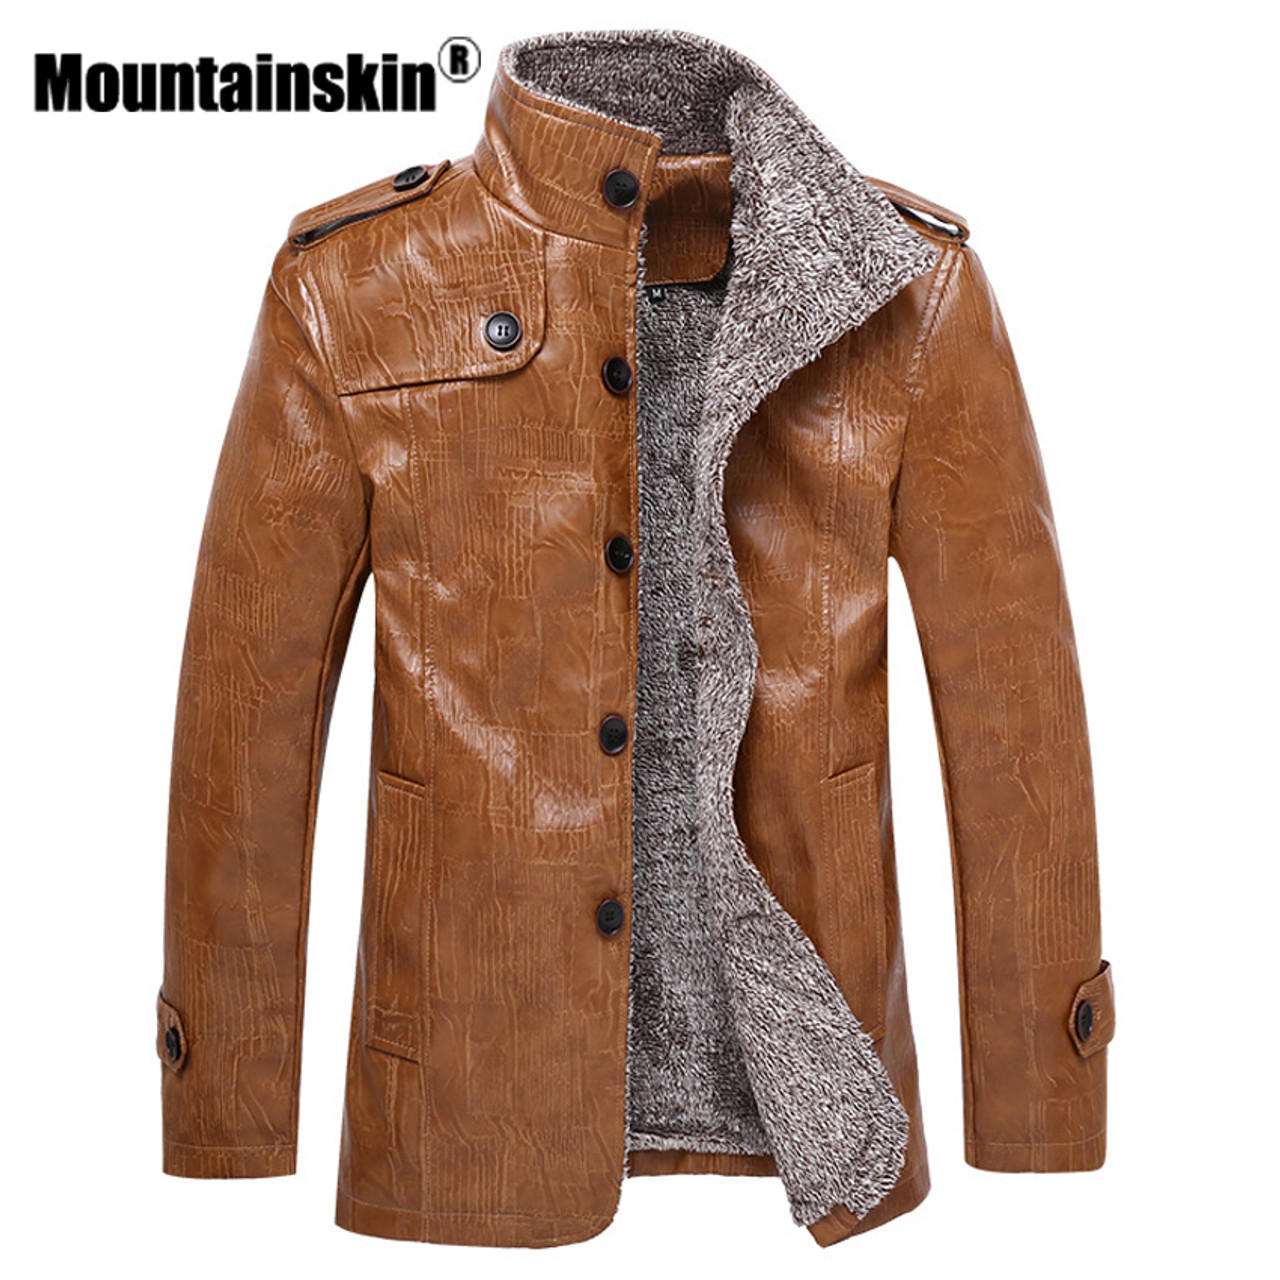 d656572da Mountainskin Winter Men's Leather Jackets 7XL 8XL Stand Collar Long Coats  Men Windbreaker Fleece PU Leather Male Jacket SA375